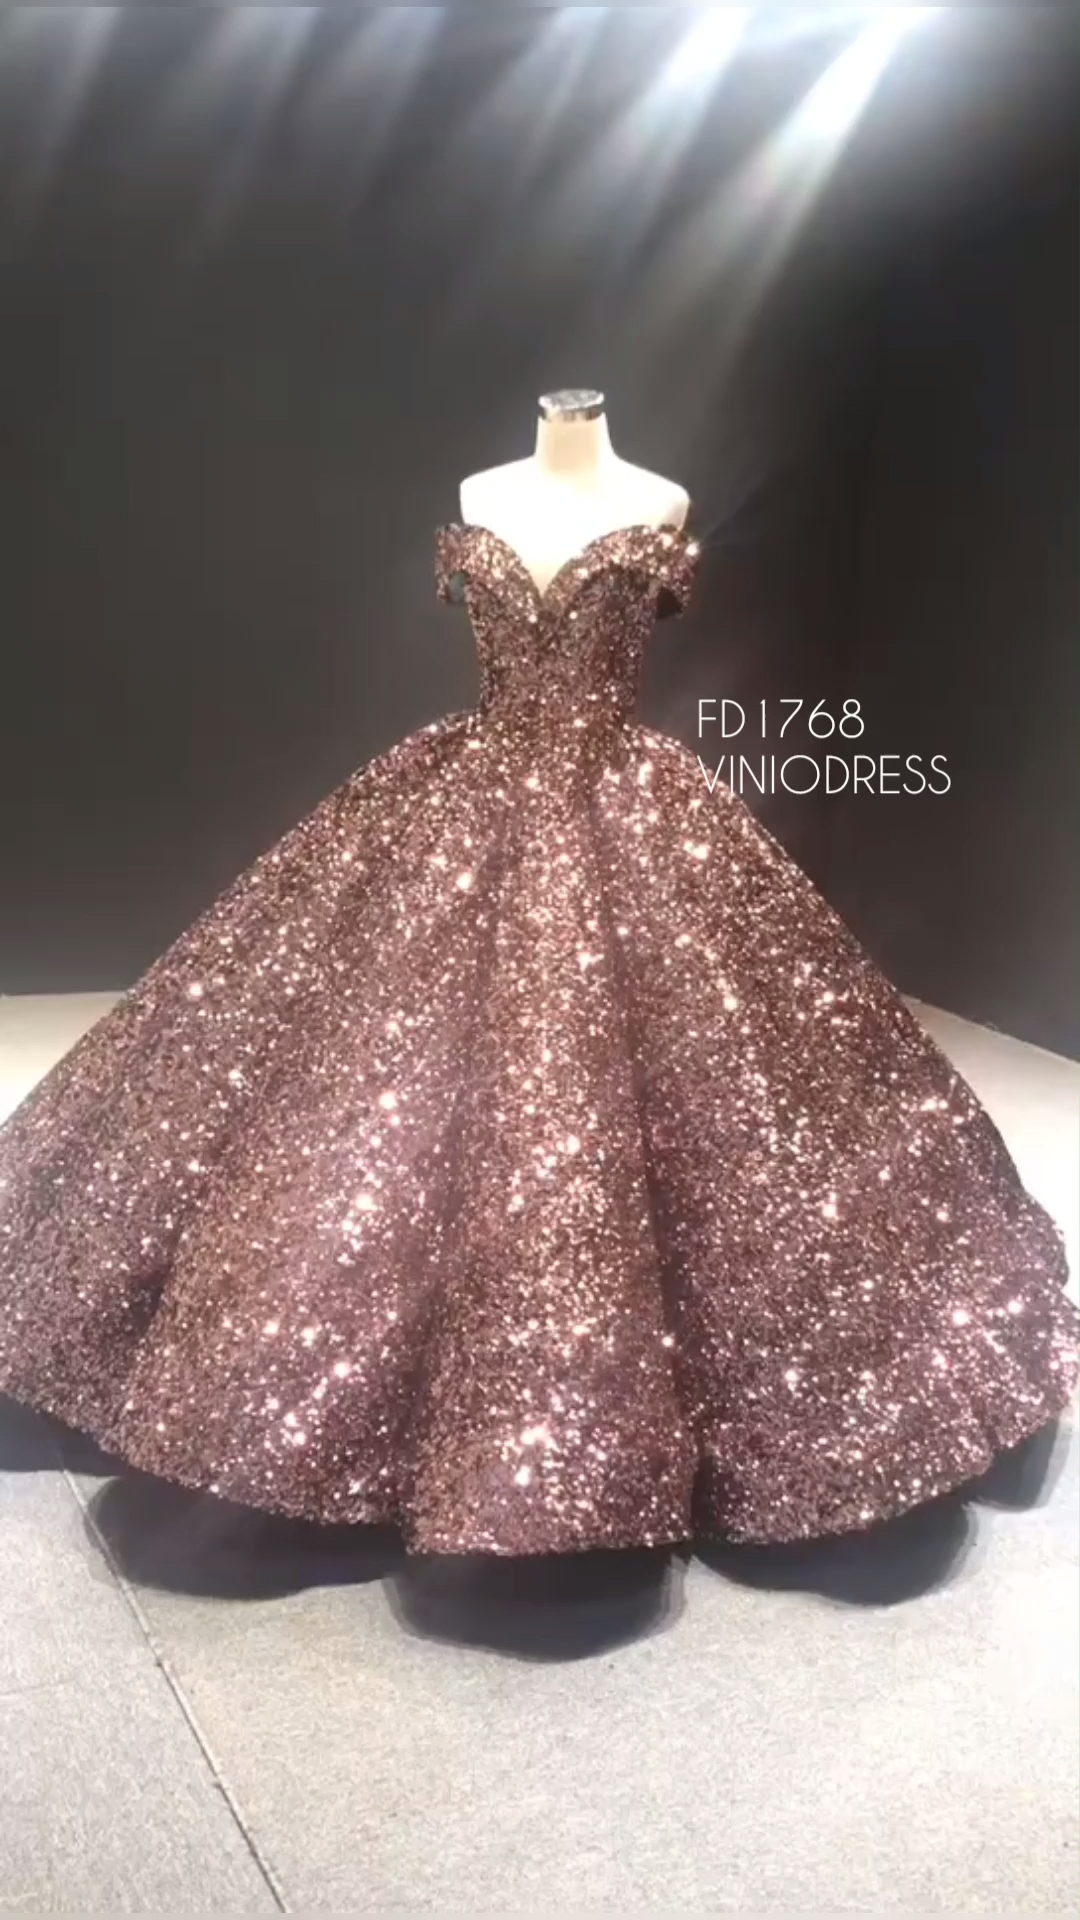 Sparkly vintage sequin ball gown. Off the shoulder haute couture dresses. #couture #prom #style #fashion #princessdress #quinceaneradresses #quincedress #debutante #sweet15dress #quinceanera #quinceañera #quinceañeradress #debutgowns